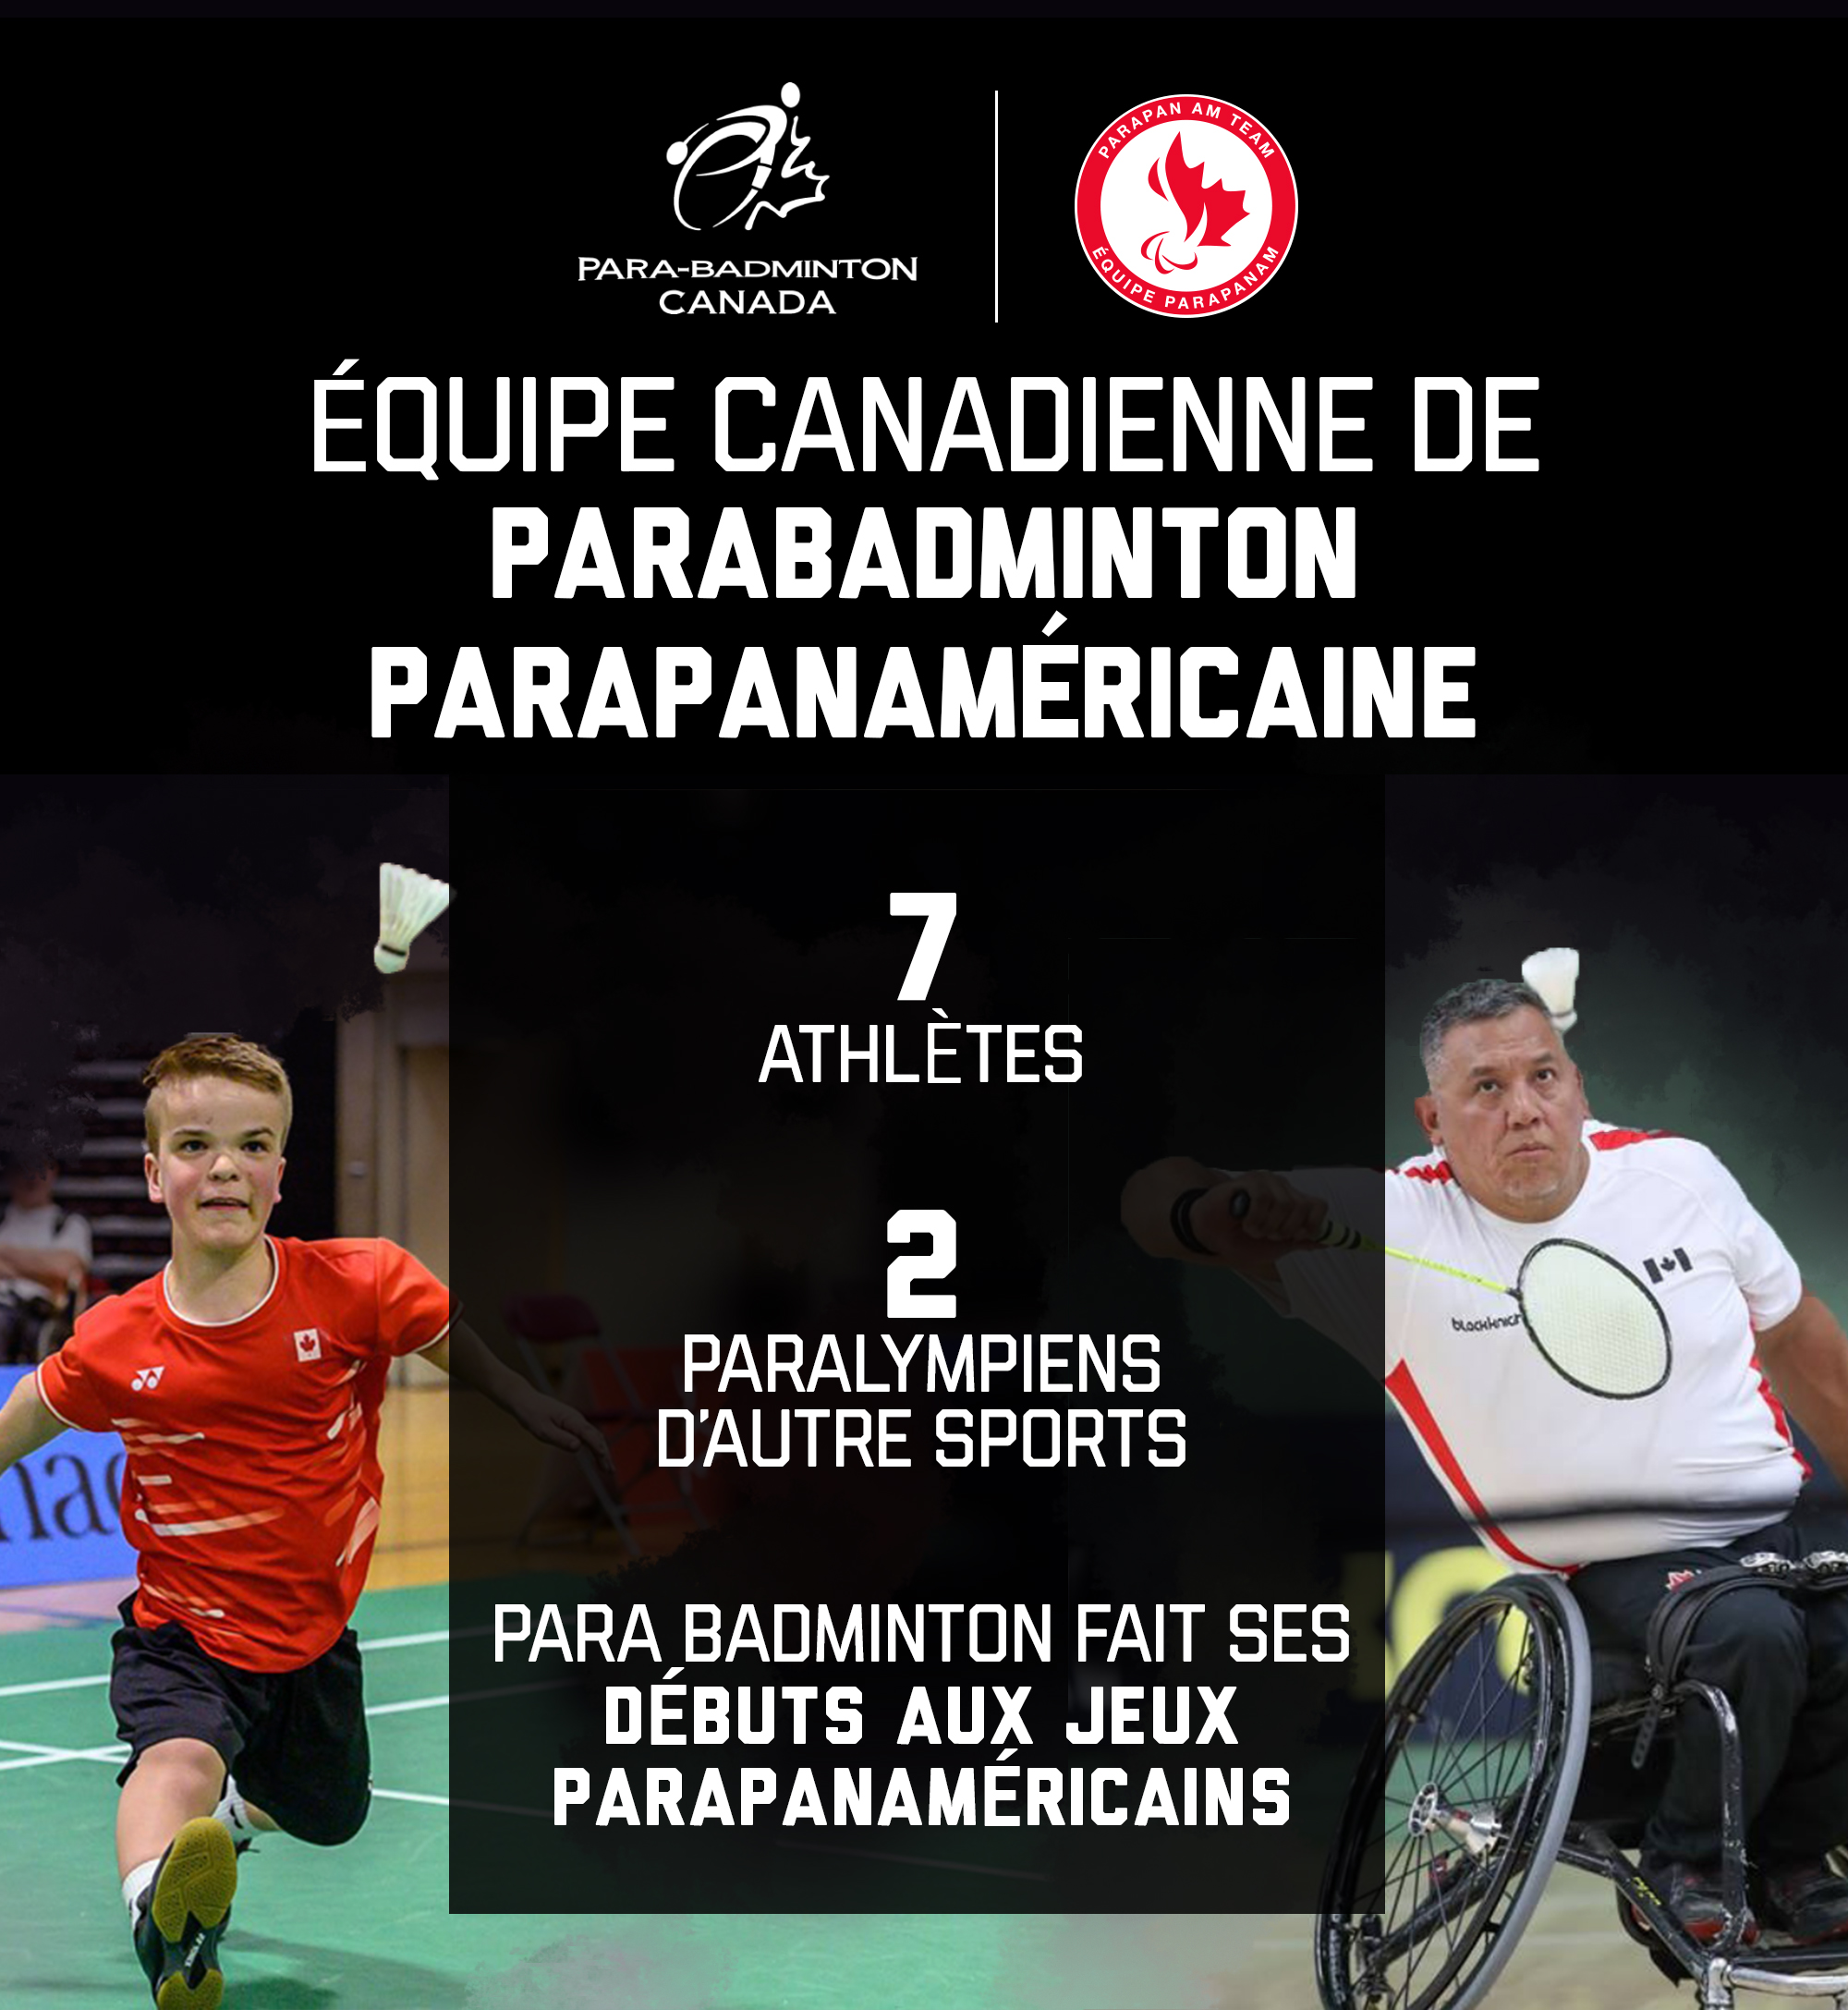 A graphic showing the make-up of the Canadian Parapan Am Badminton Team